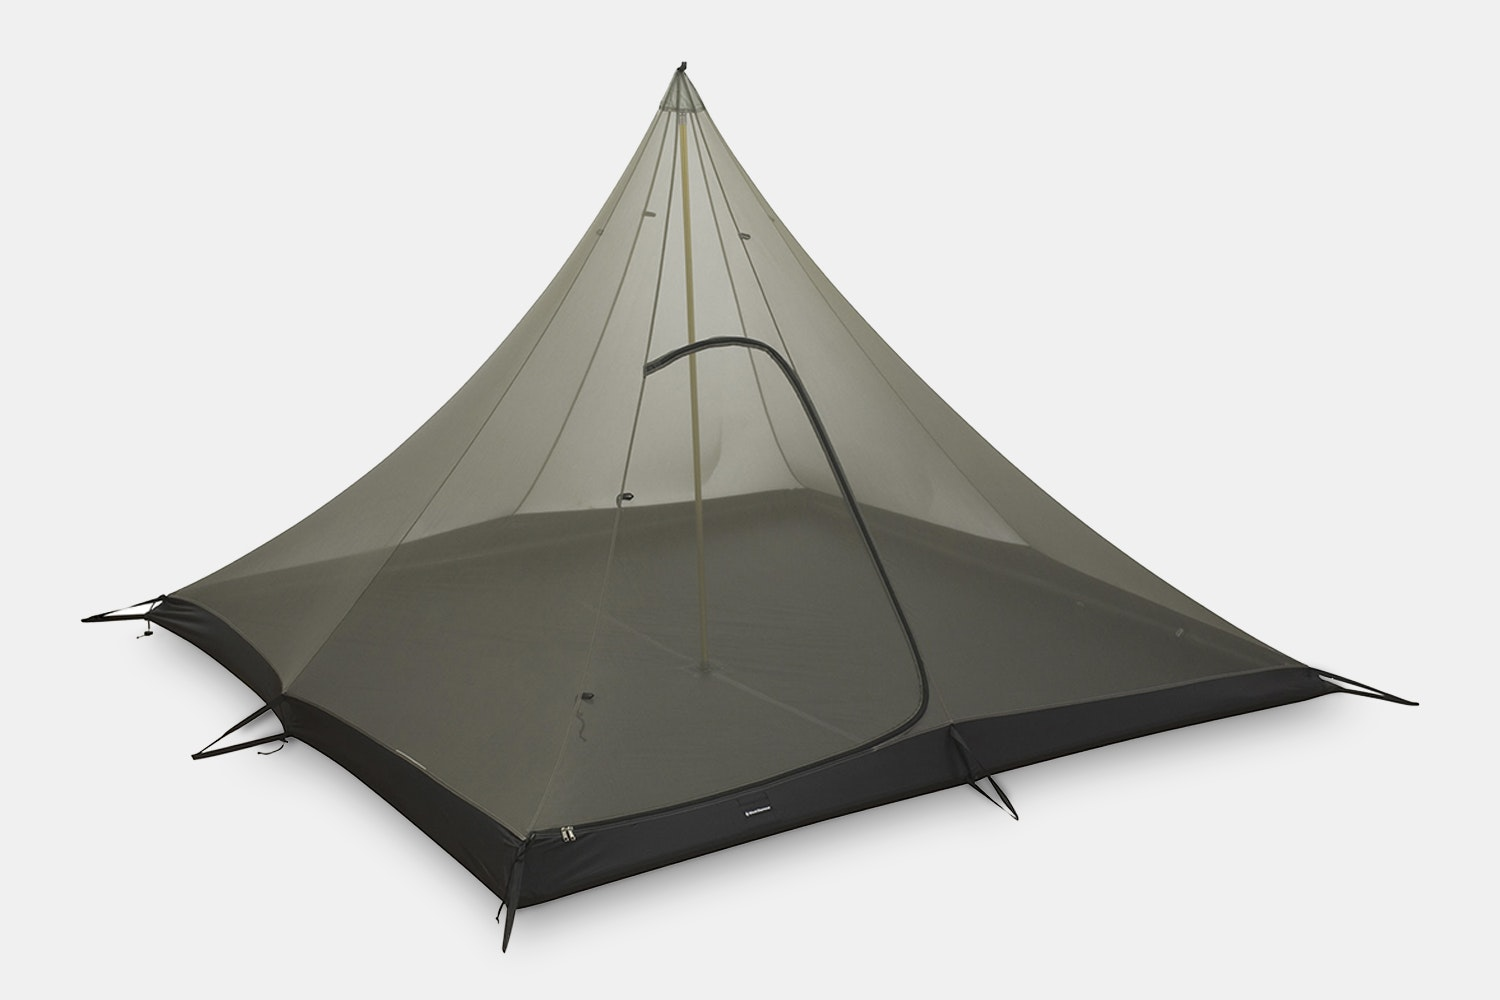 Black Diamond Mega Light u0026 Mega Bug Tents : black diamond tents uk - memphite.com